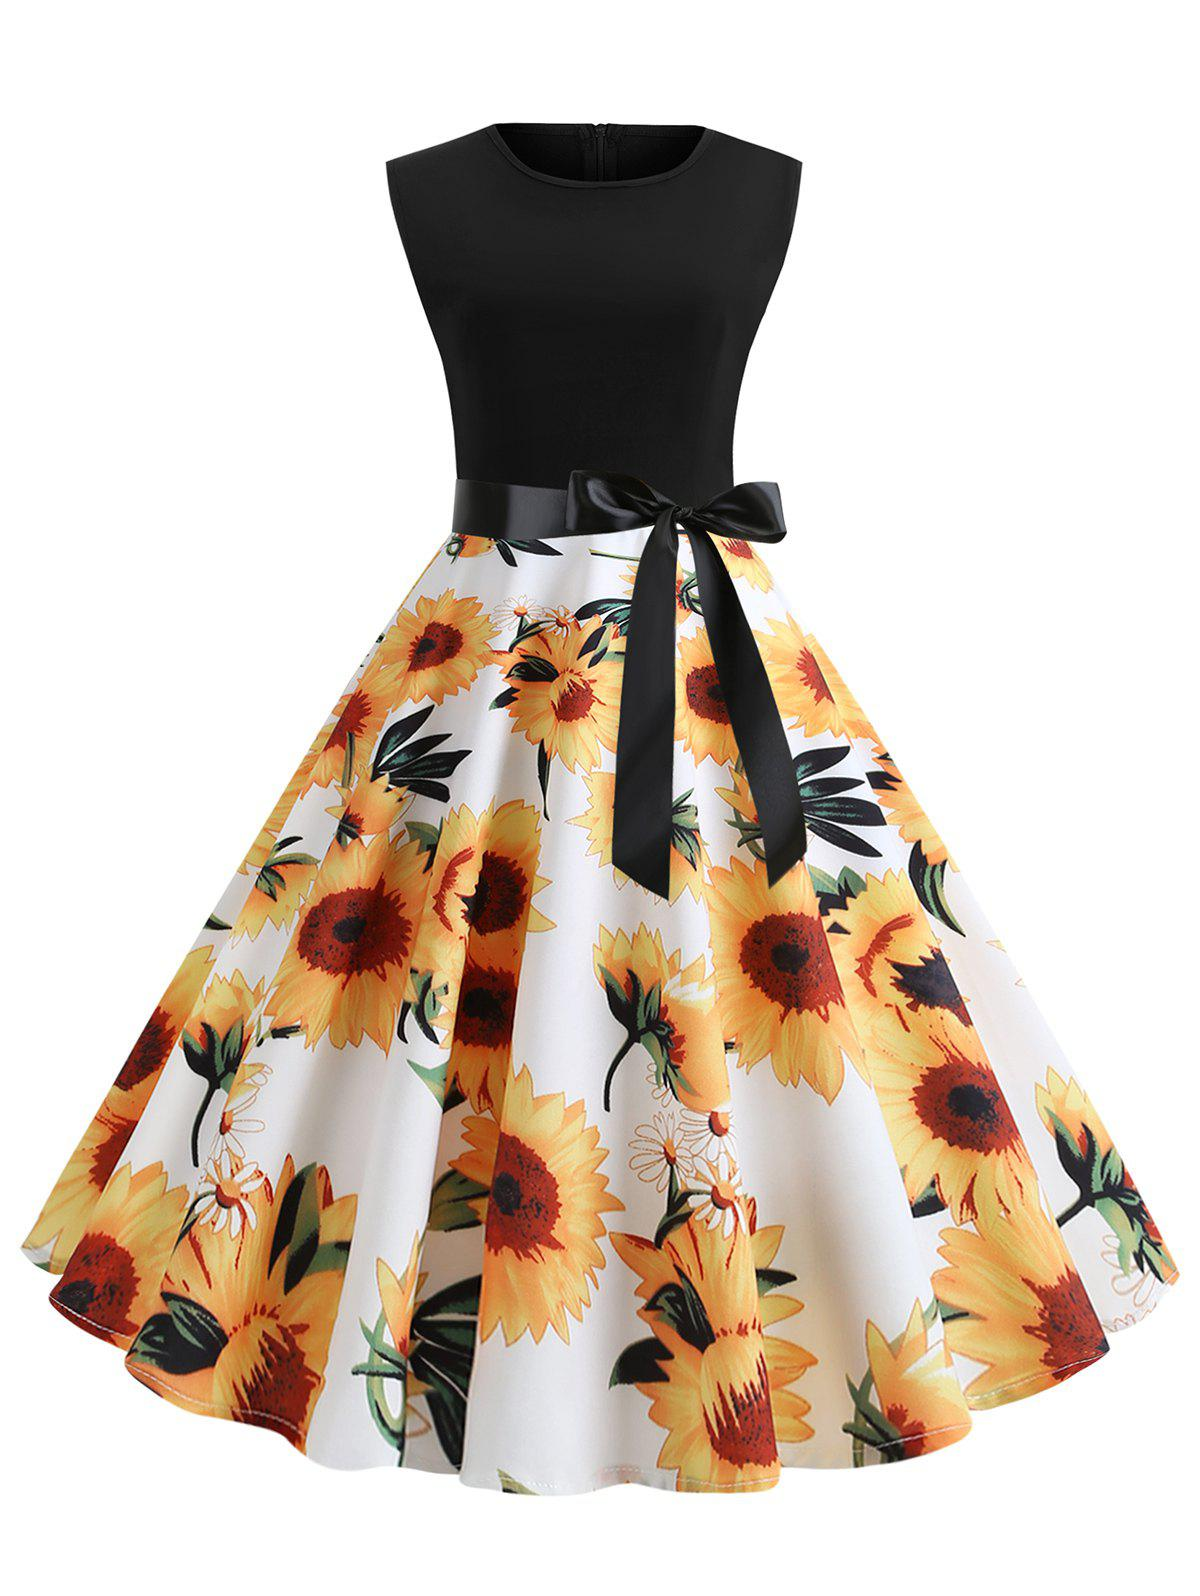 Discount Vintage Sunflower Print Belted Flare Dress